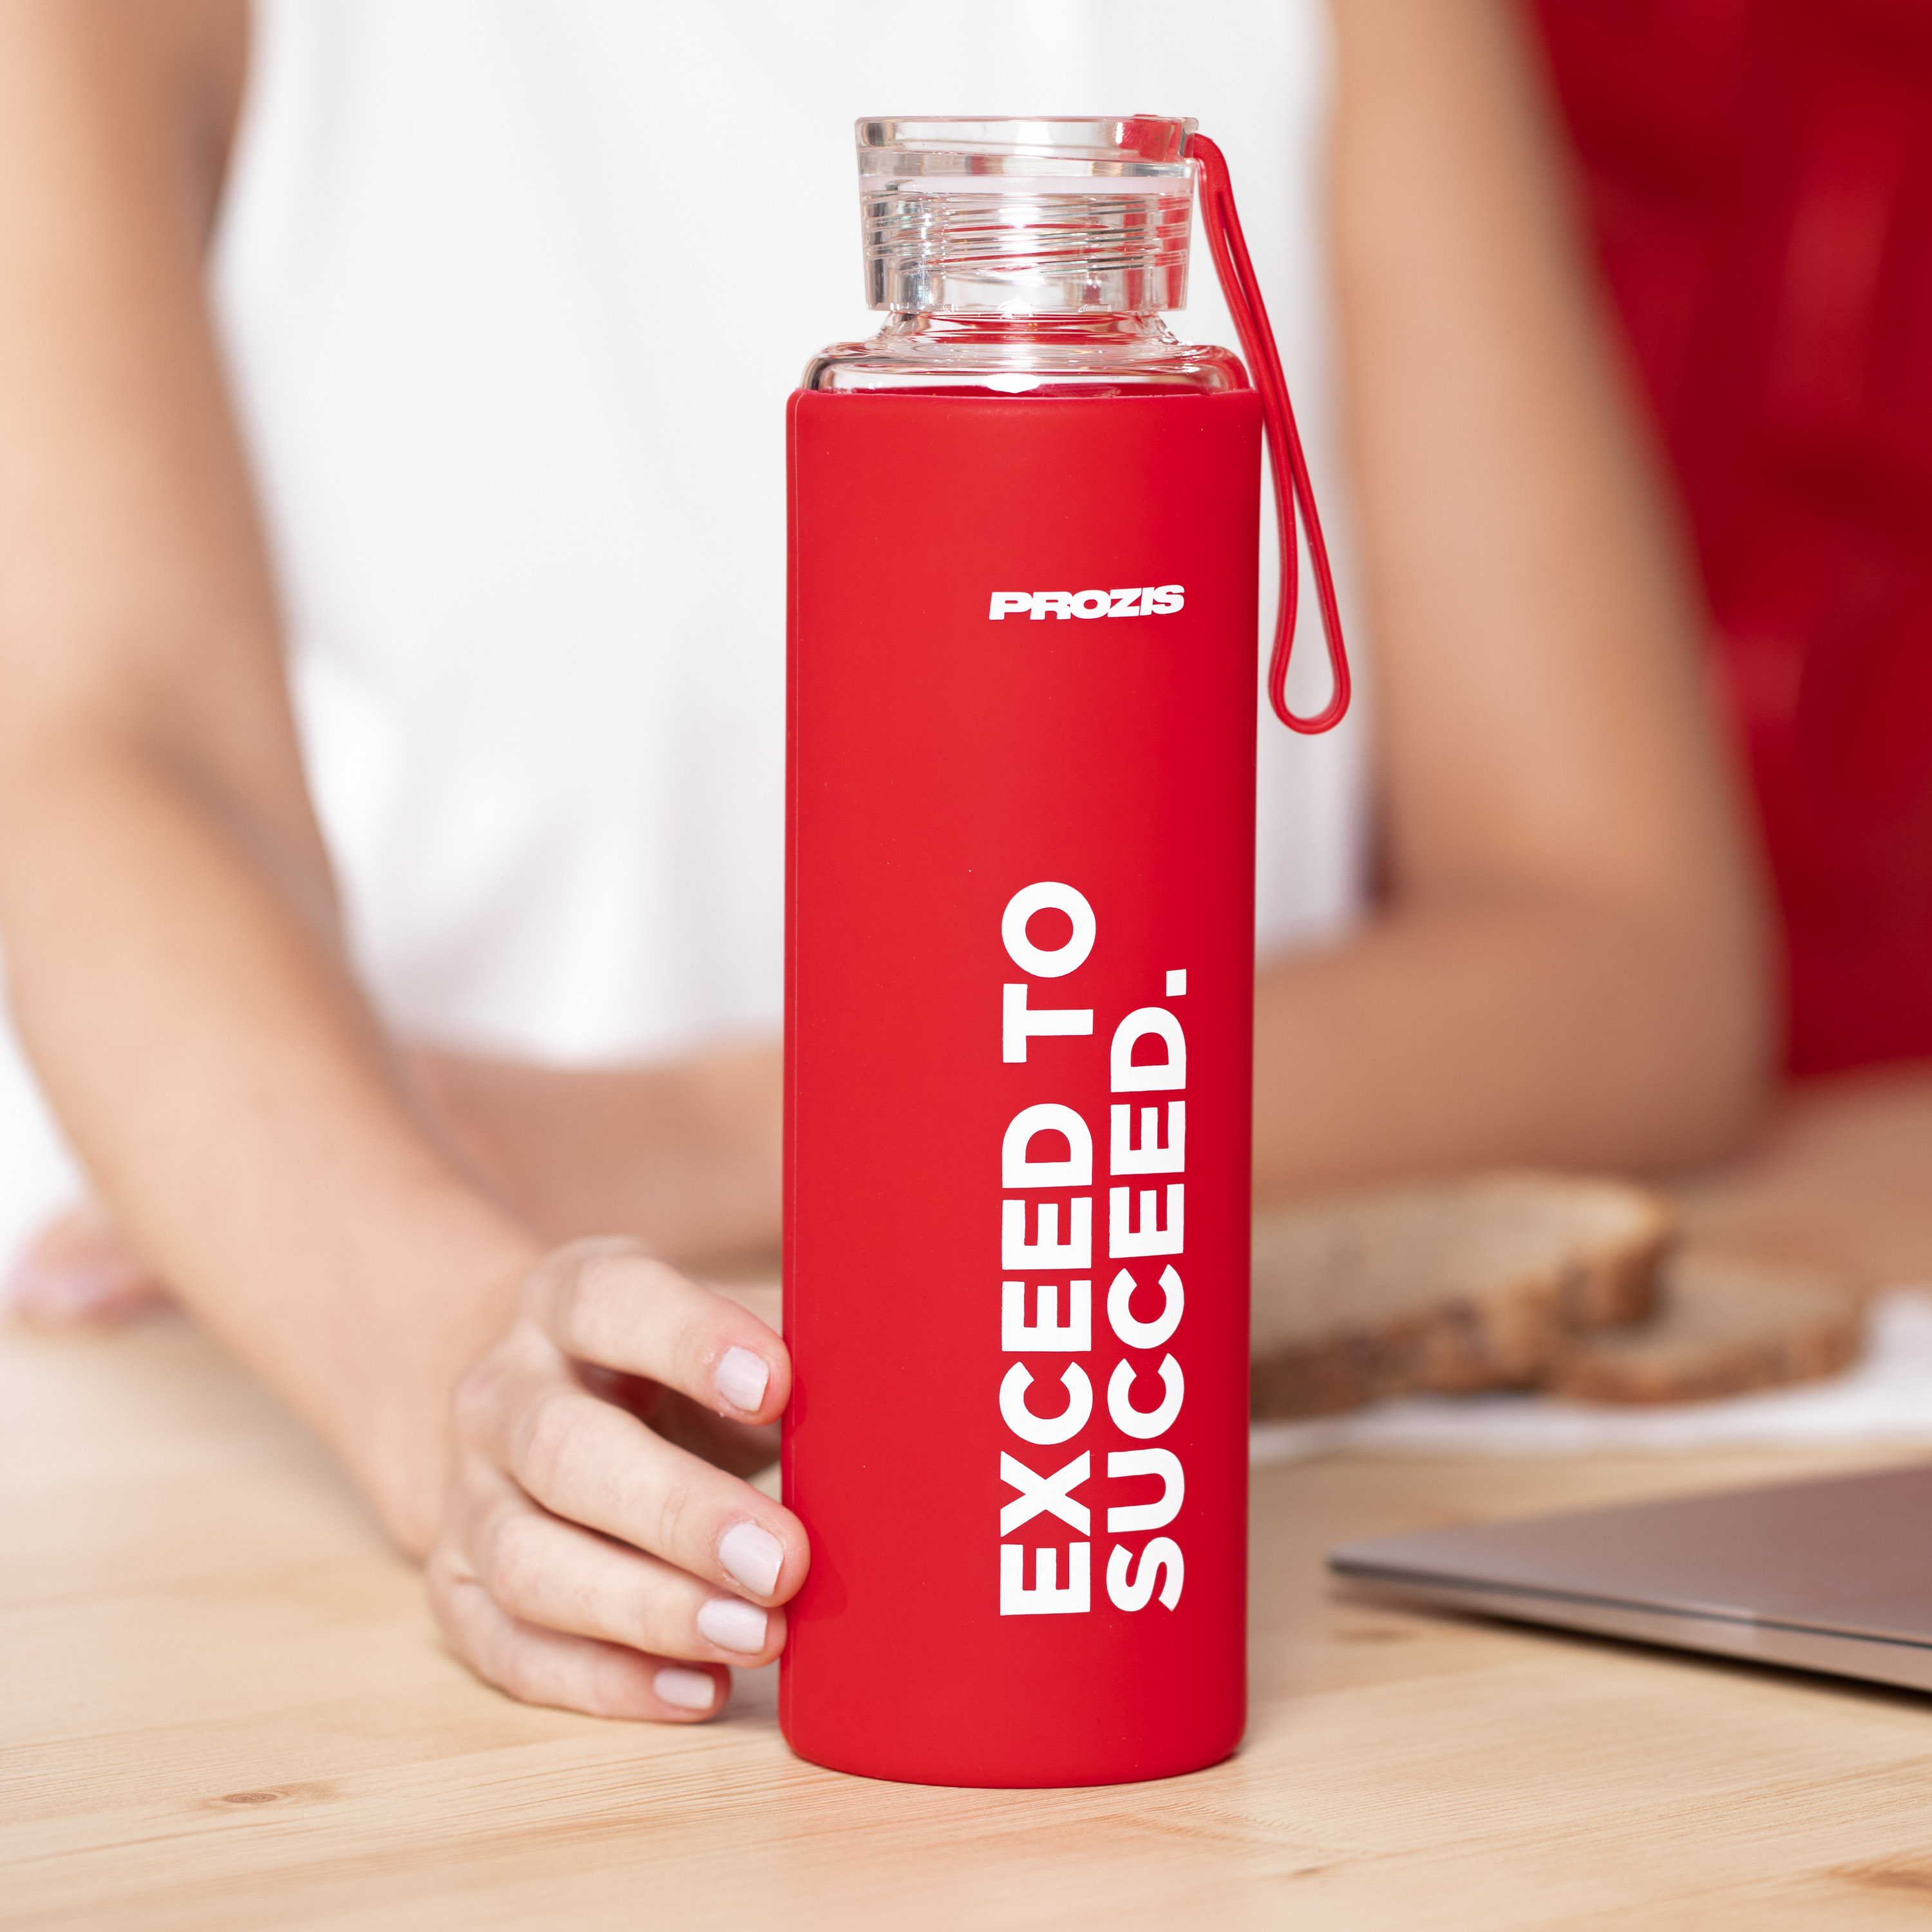 mantra glass bottle red 550 ml home prozis mantra glass bottle red 550 ml